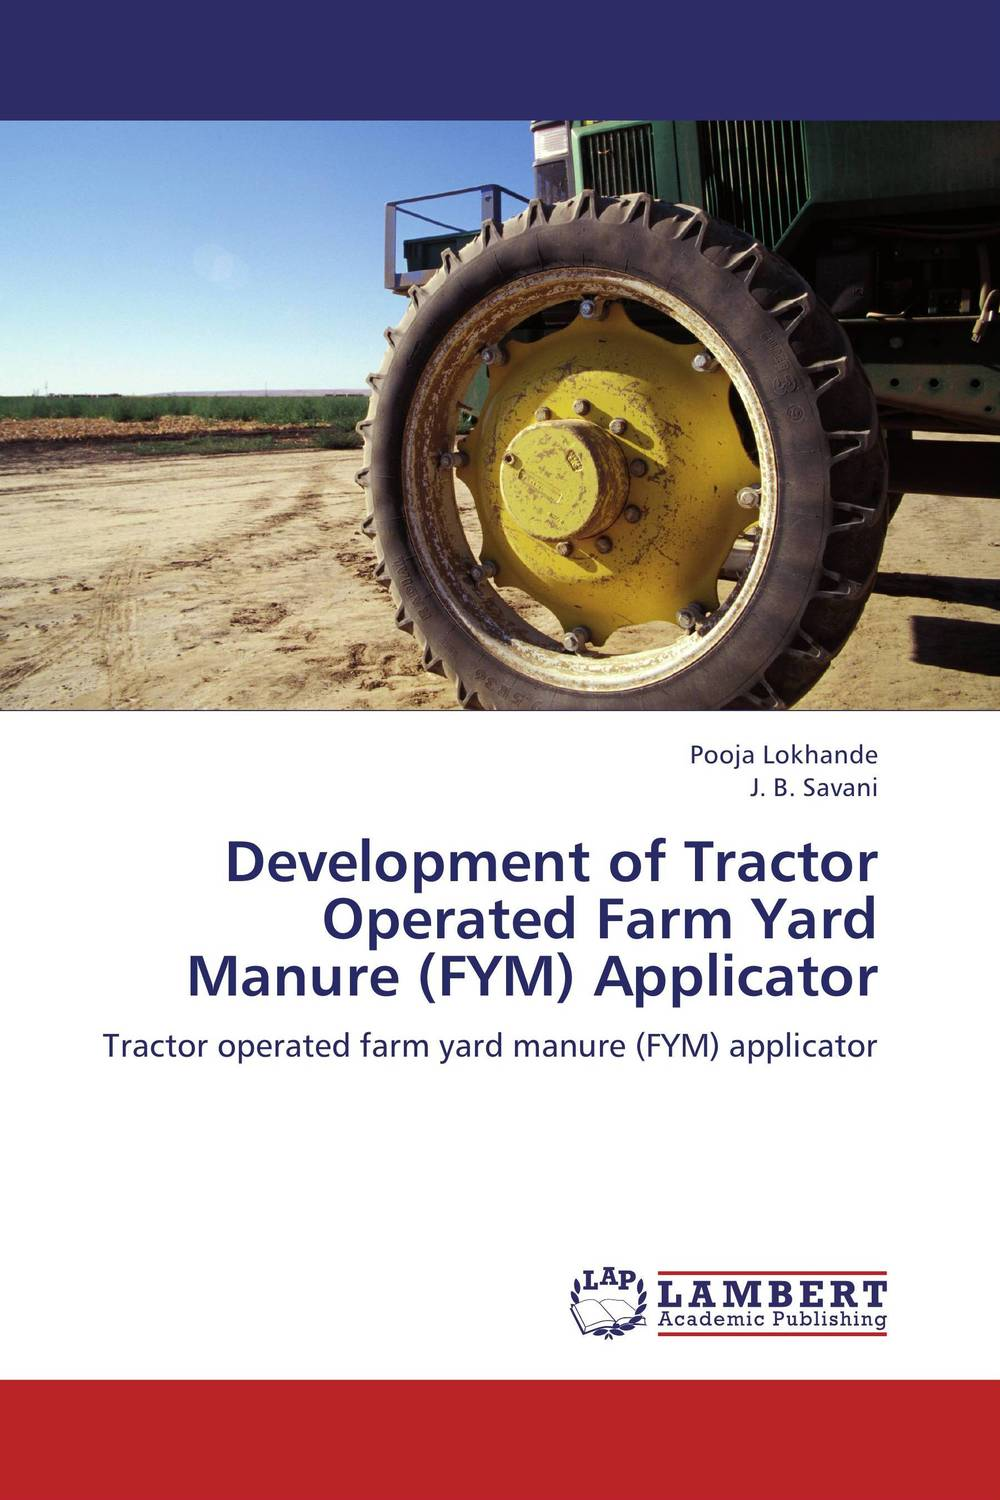 Development of Tractor Operated Farm Yard Manure (FYM) Applicator thermo operated water valves can be used in food processing equipments biomass boilers and hydraulic systems